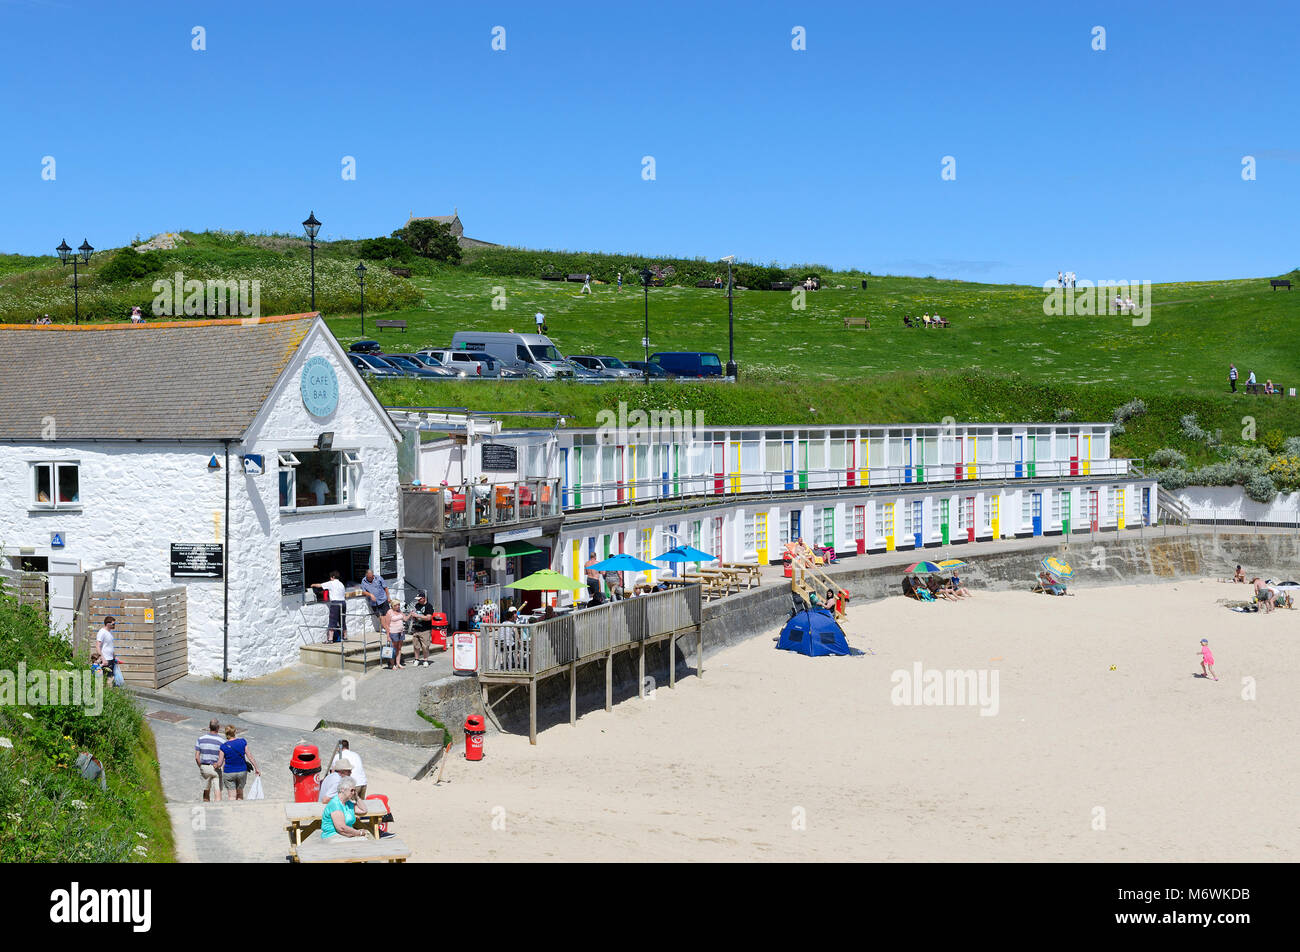 summers day at porthgwidden beach in st.ives, cornwall, england, britain, uk. - Stock Image